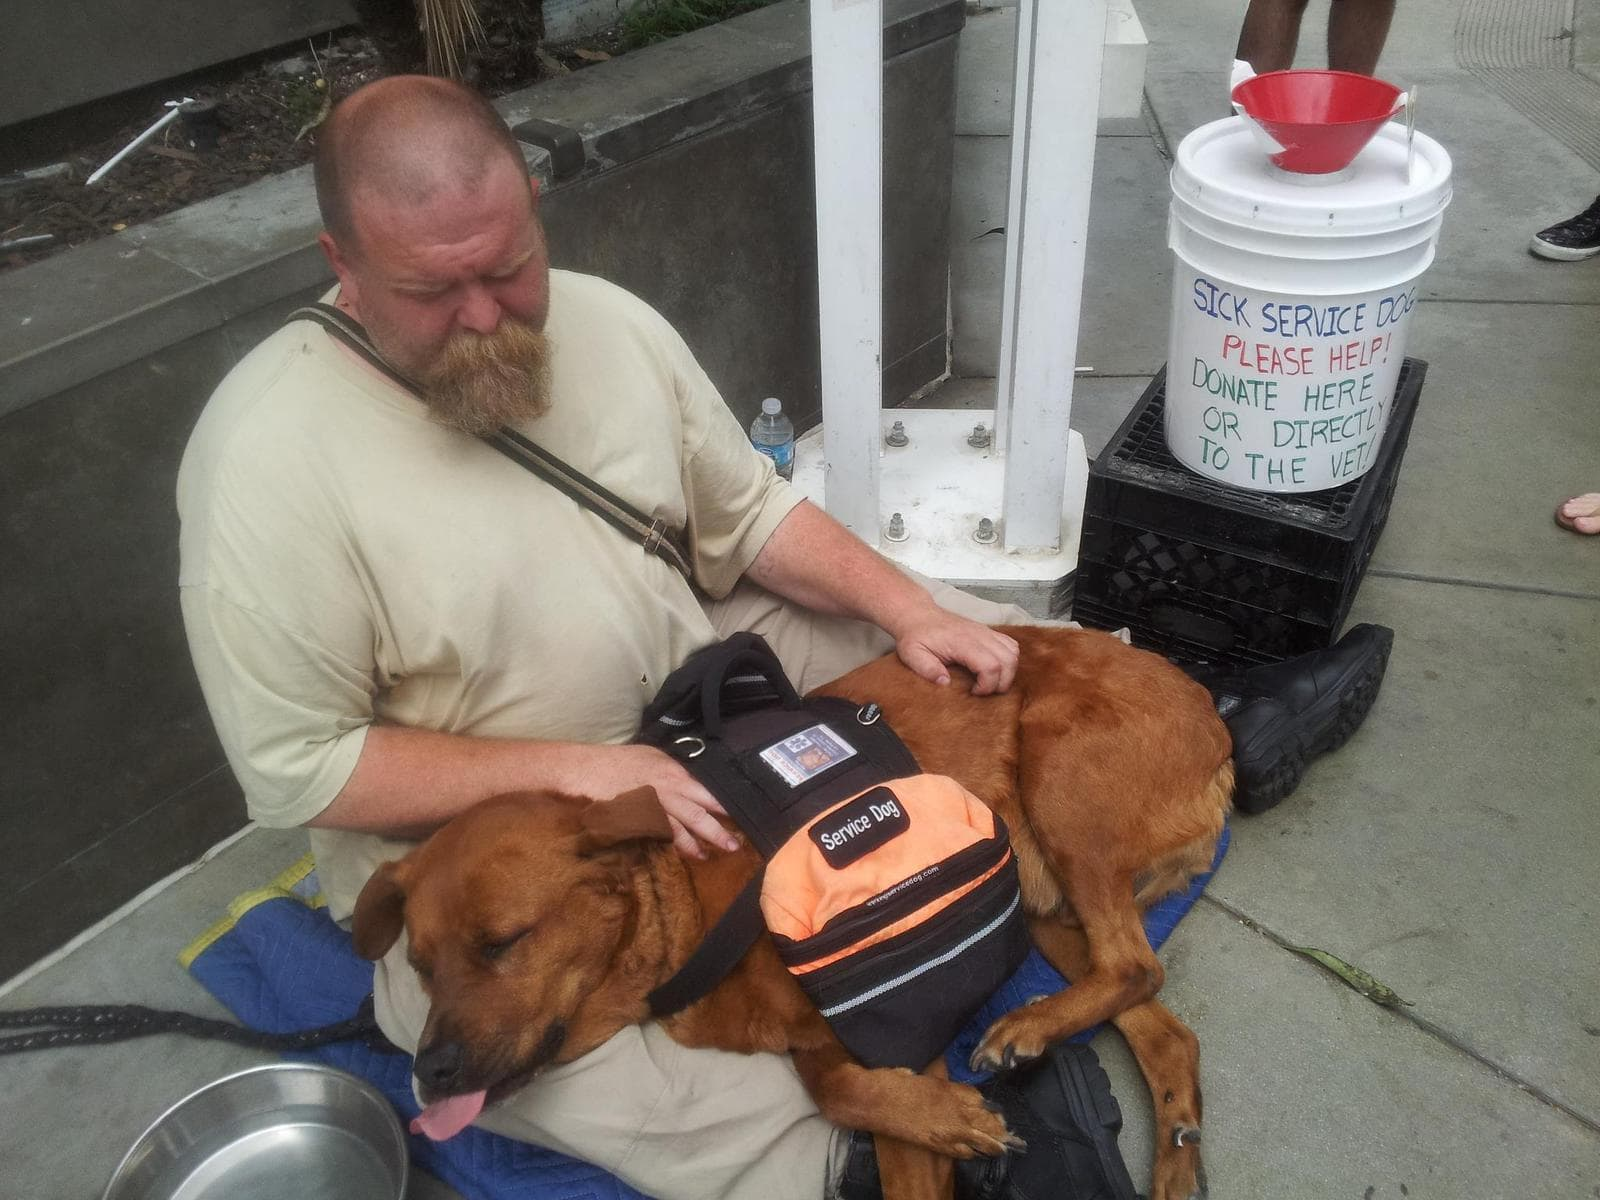 Community Helps Homeless Man Save His Dog